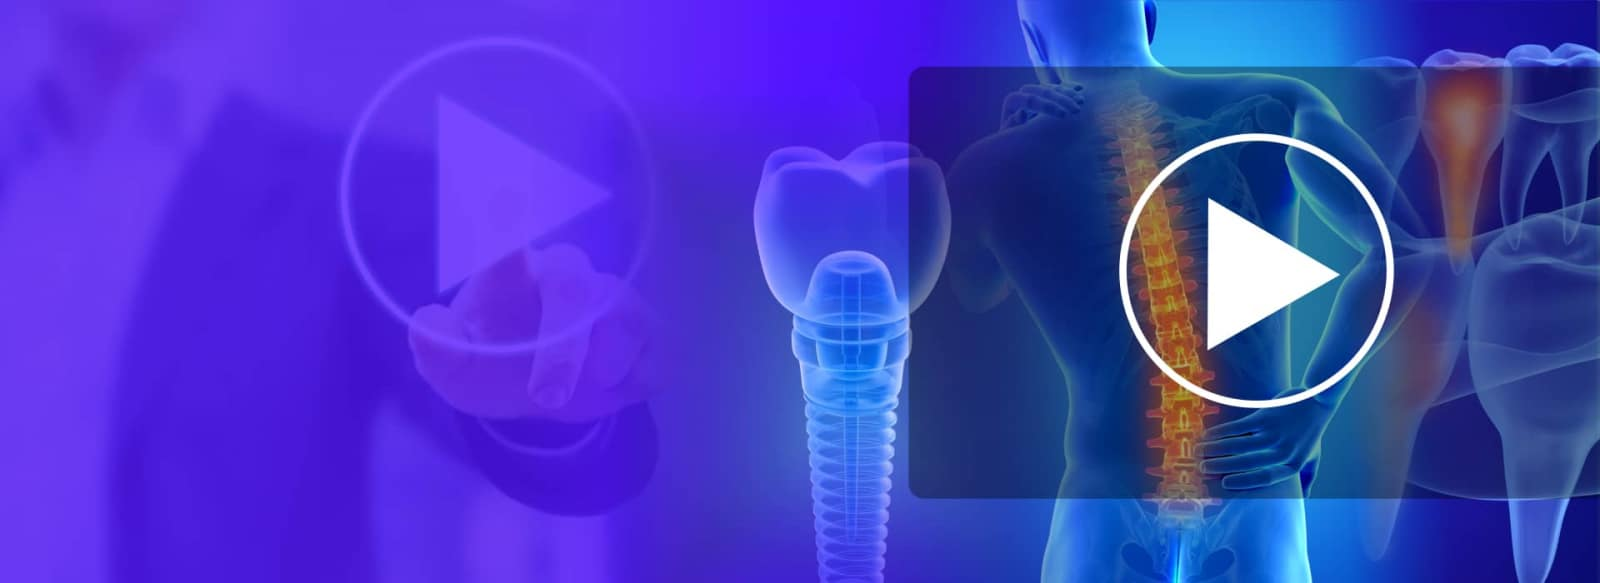 background image showing mix of tooth, dental implant and video